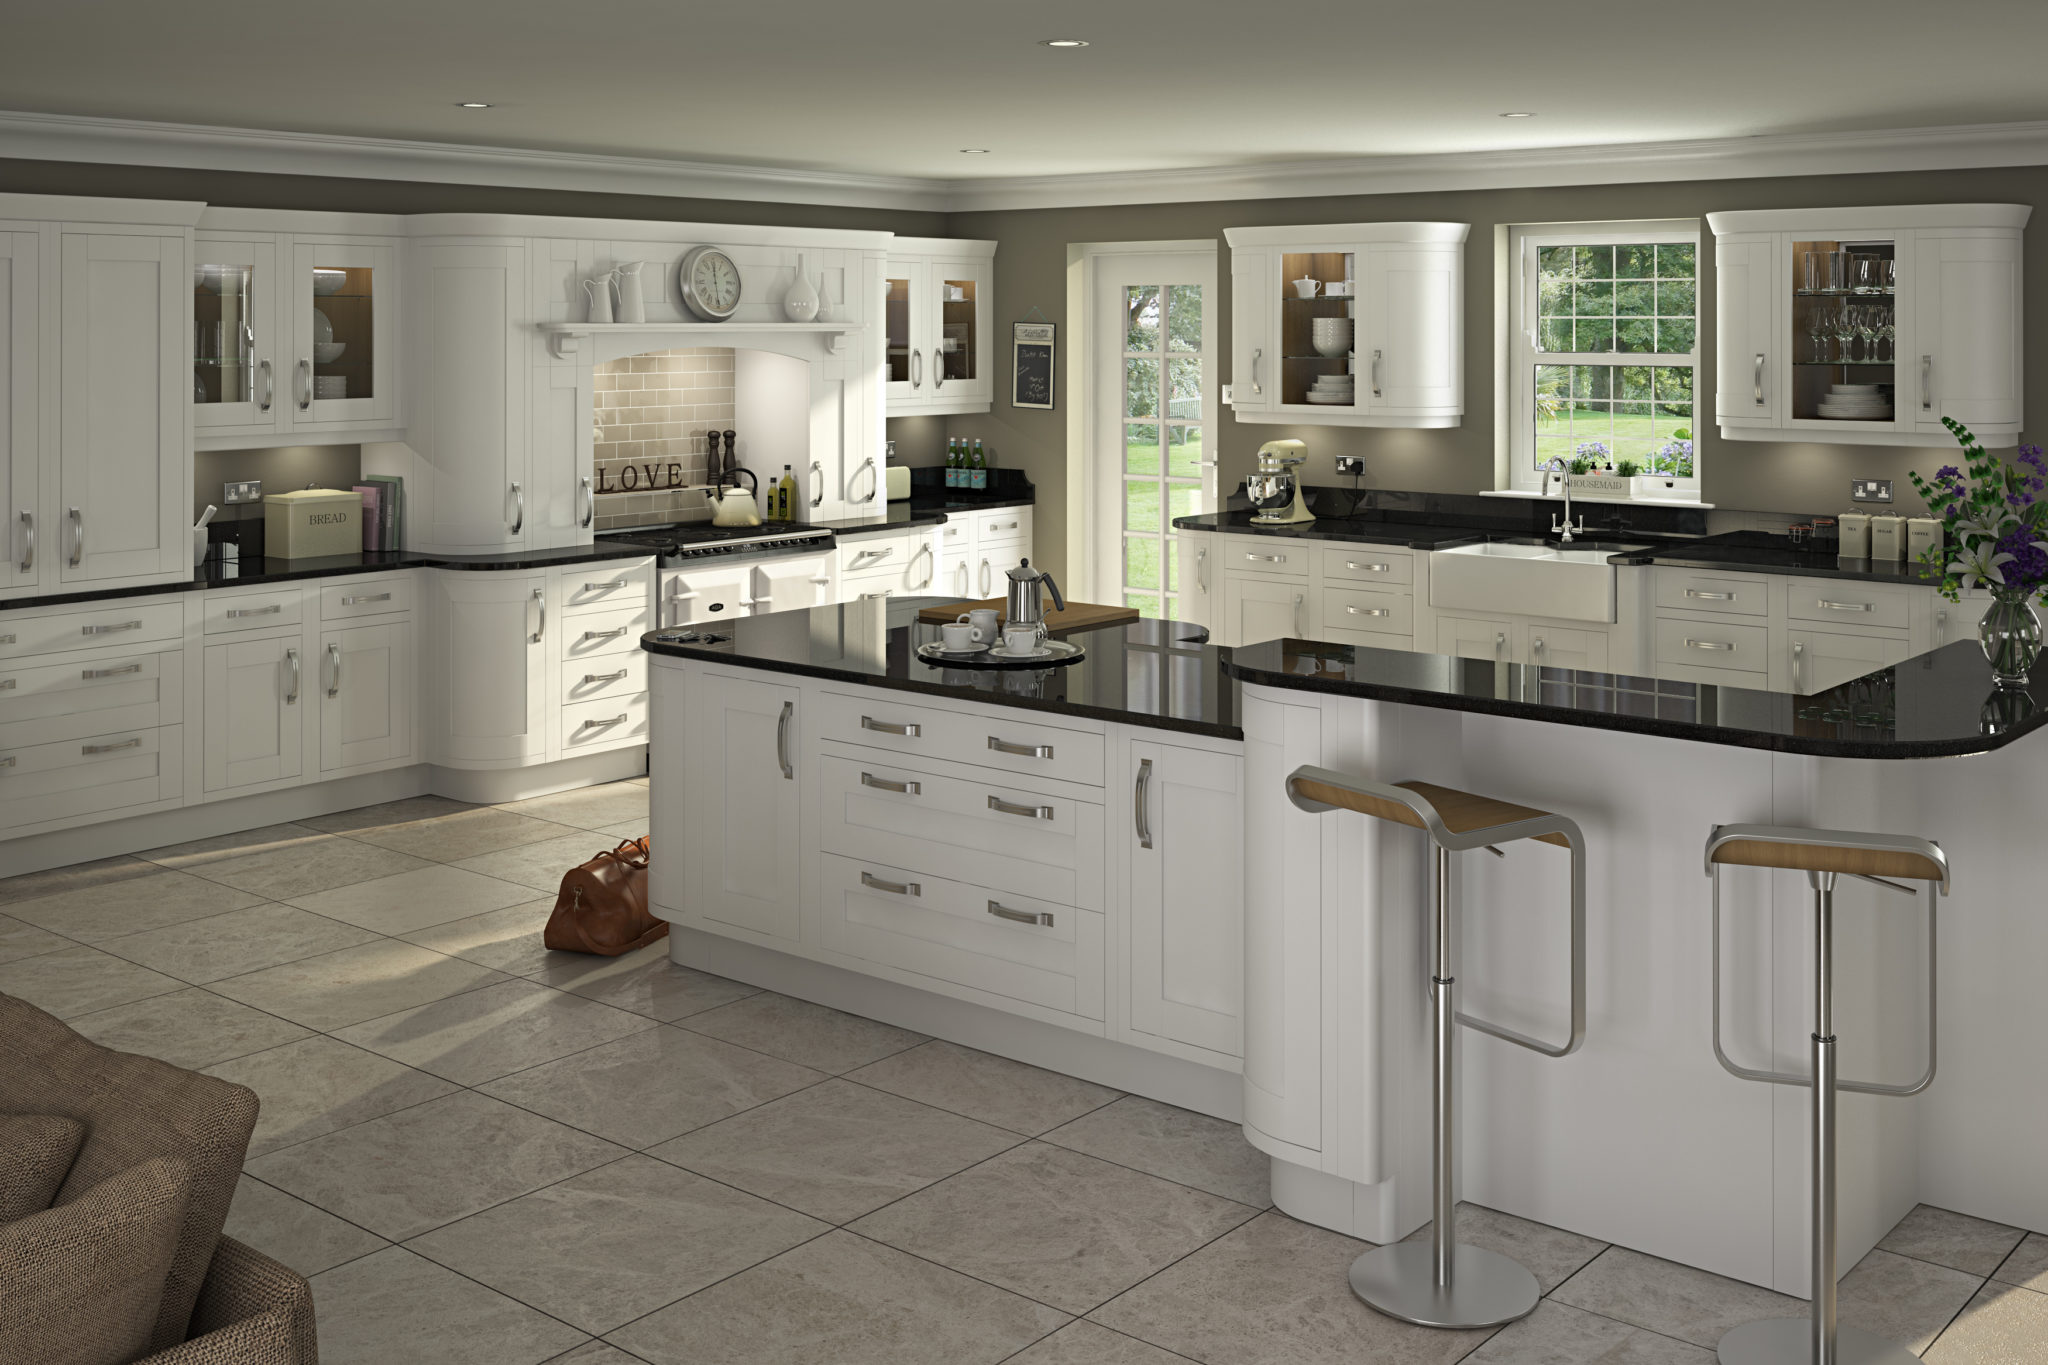 Kitchen Design Uk Images Traditional In Frame Kitchen Design Painted Kitchens Think